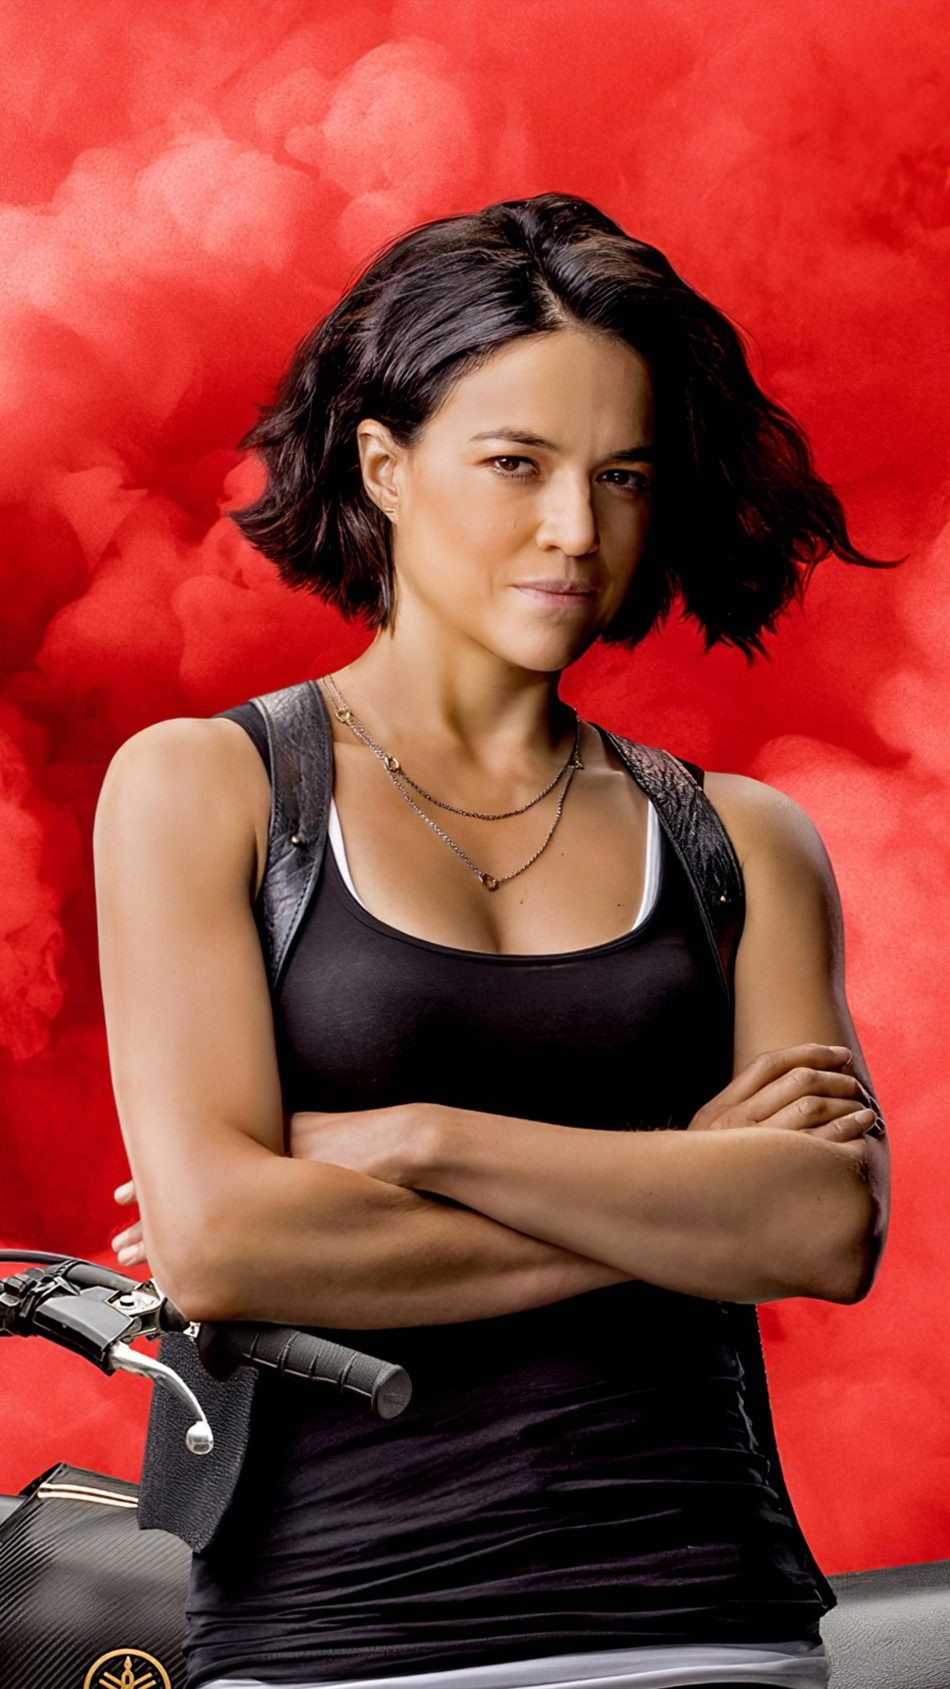 Michelle Rodriguez In F9 The Fast Saga 4k Ultra Hd Fast Furious 9 950x1689 Wallpaper Teahub Io